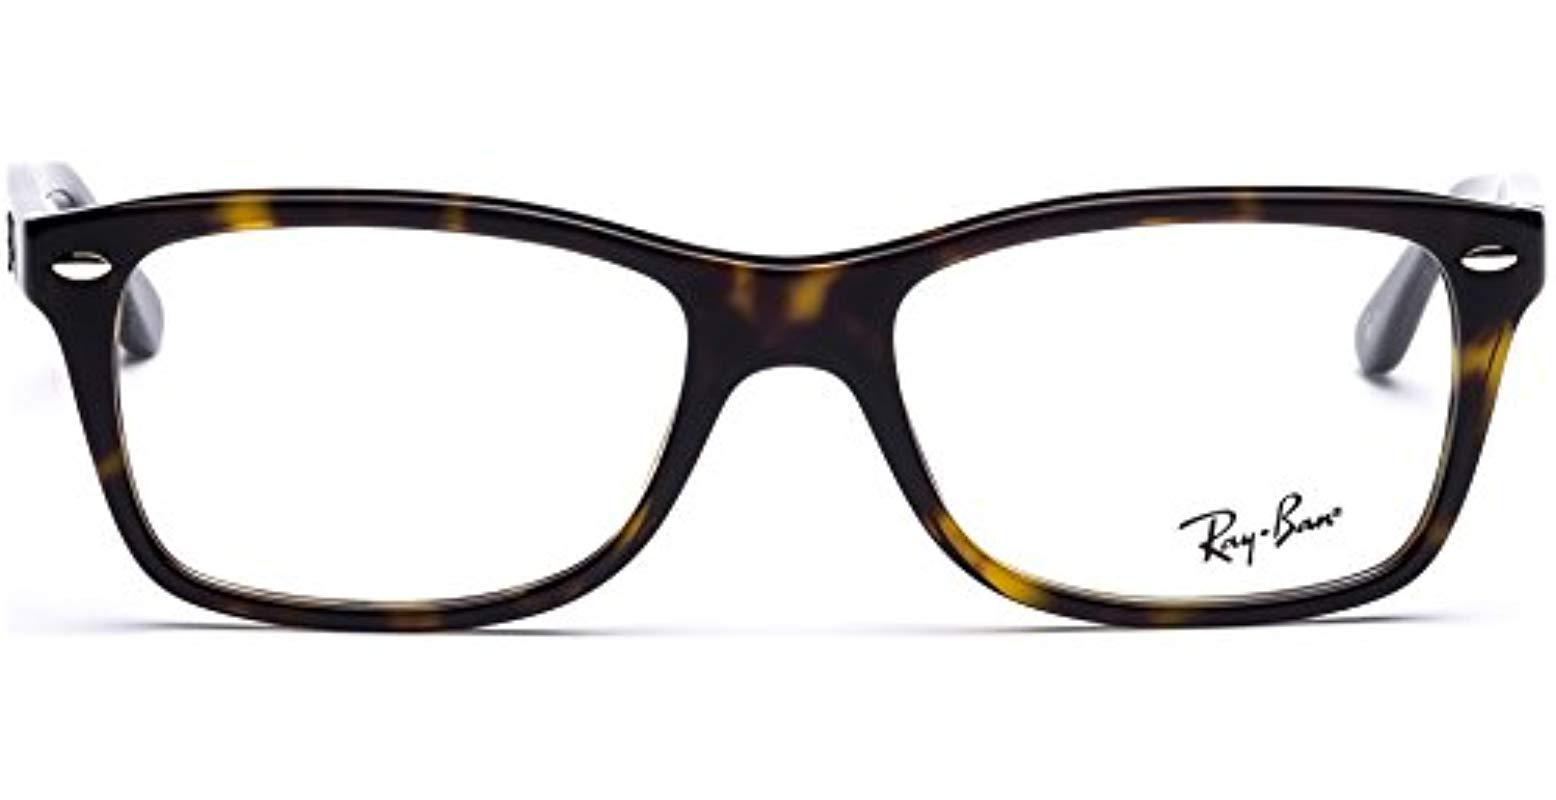 9fbfd7d936 Ray-Ban Rx5228 Glasses In Havana Brown Rx5228 5545 50 in Brown for ...